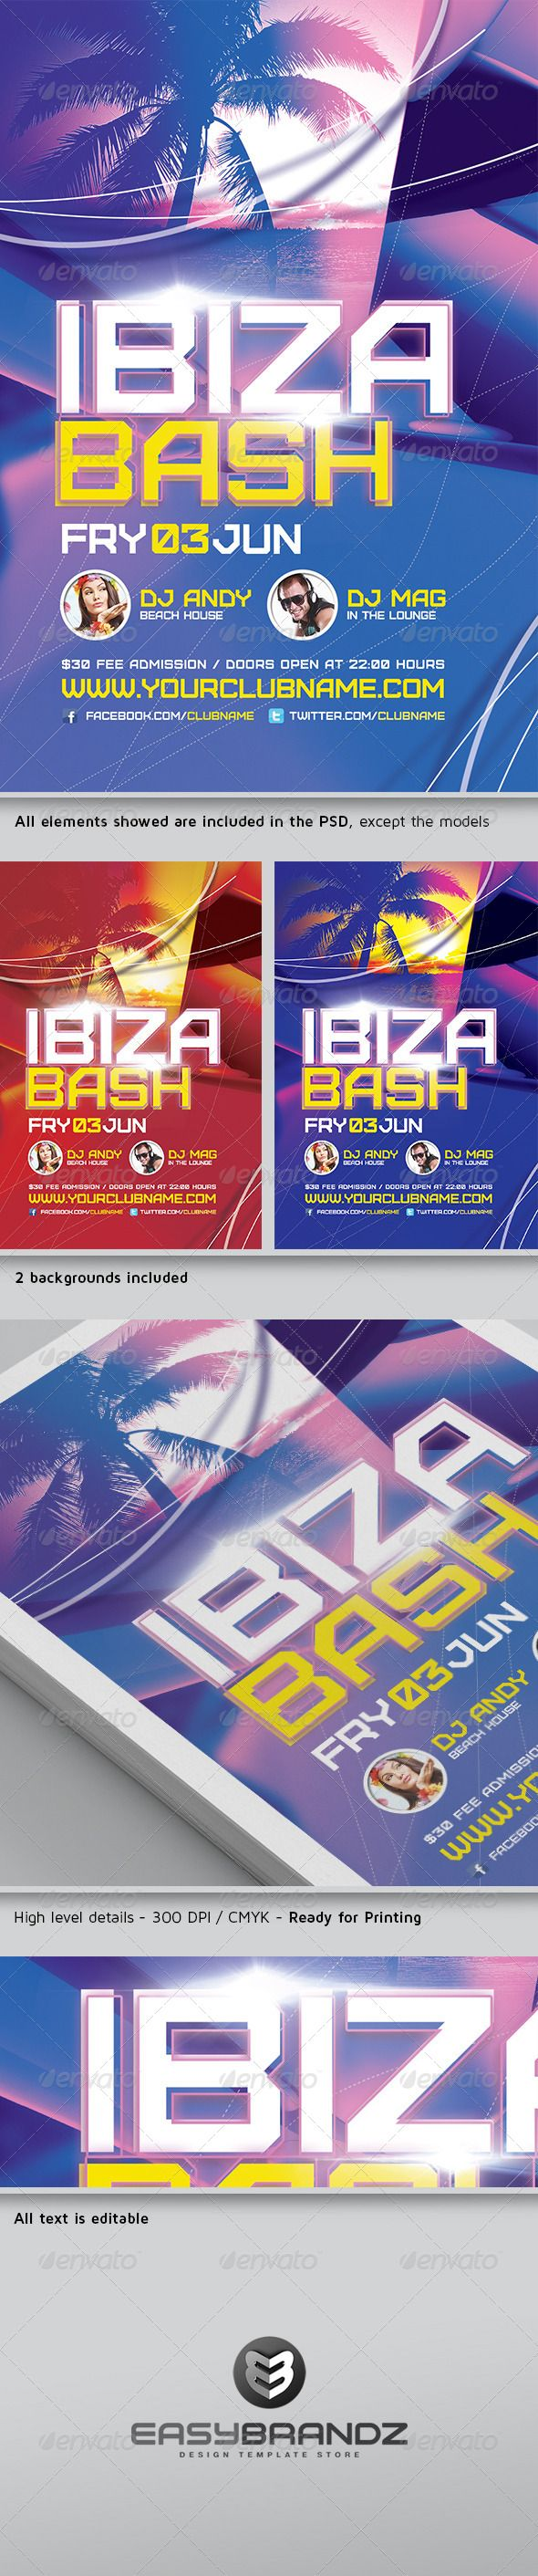 Ibiza Bash Flyer Template